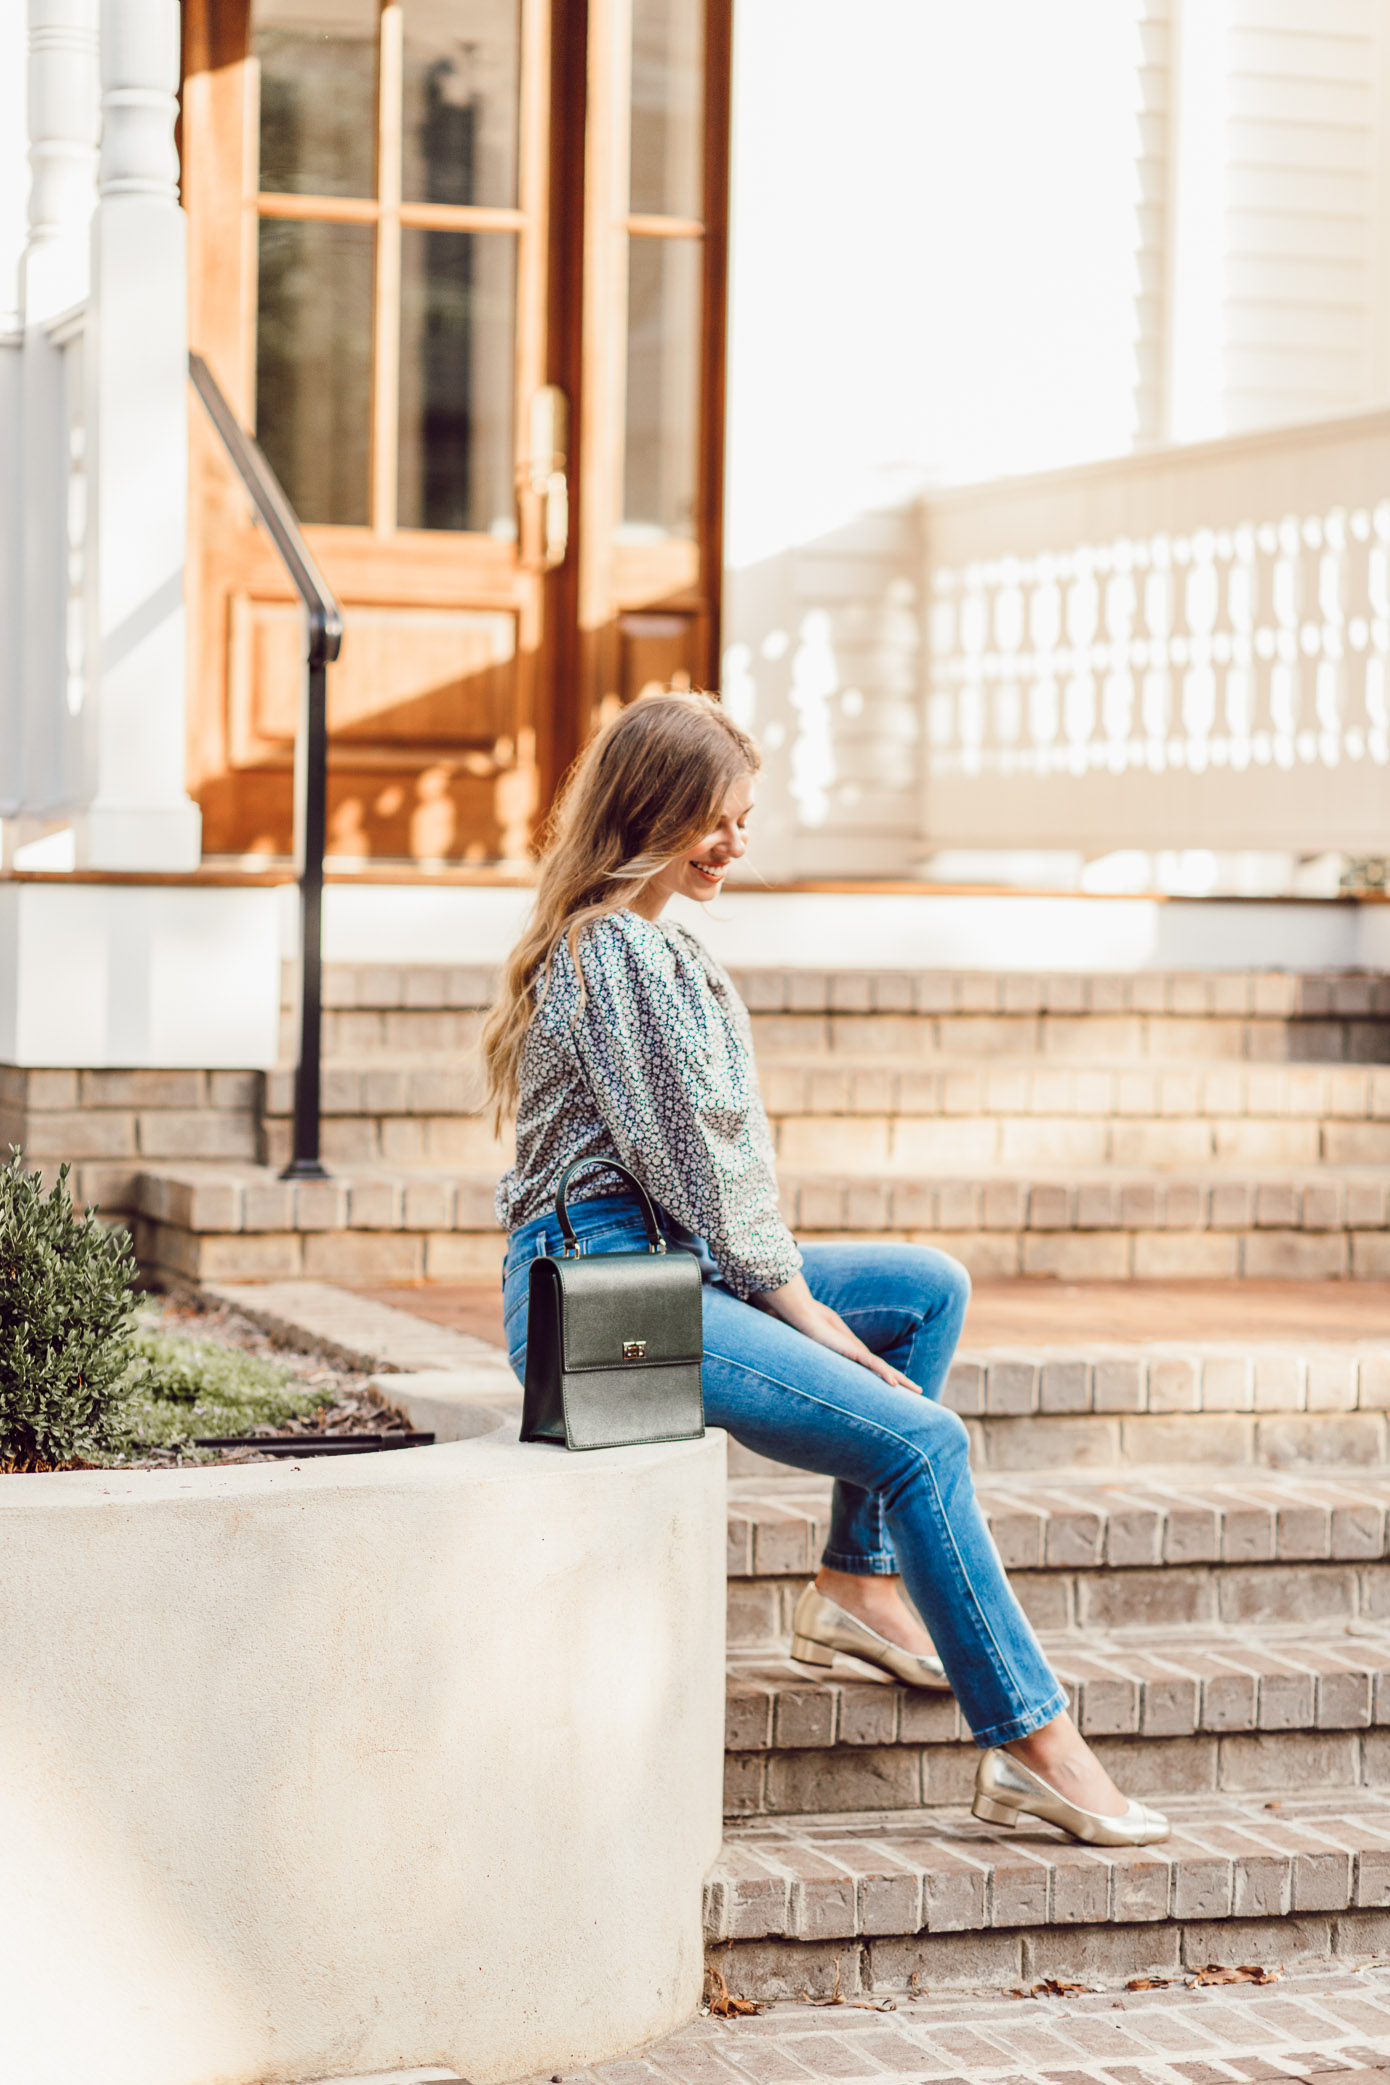 Fall Statement Sleeve Tops - Rebecca Taylor Lauren Poplin Top featured by popular Charlotte style blogger, Laura Leigh of Louella Reese